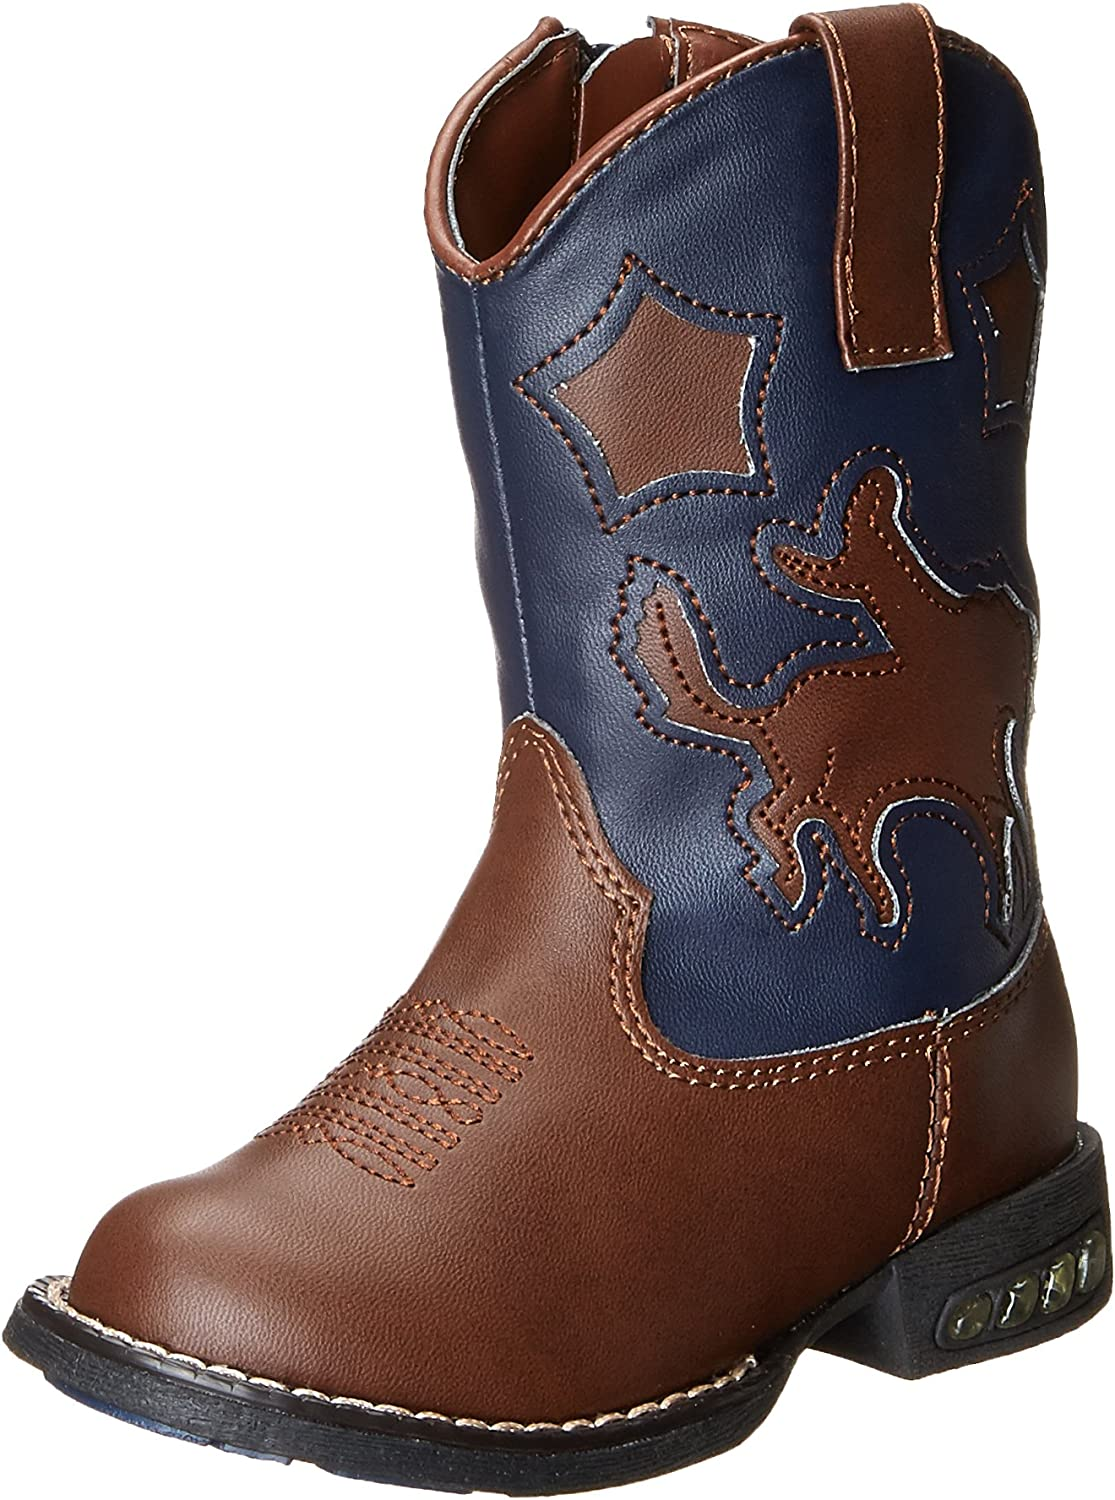 Roper Star Rider R Toe Light Up Cowgirl Boot Toddler//Little Kid